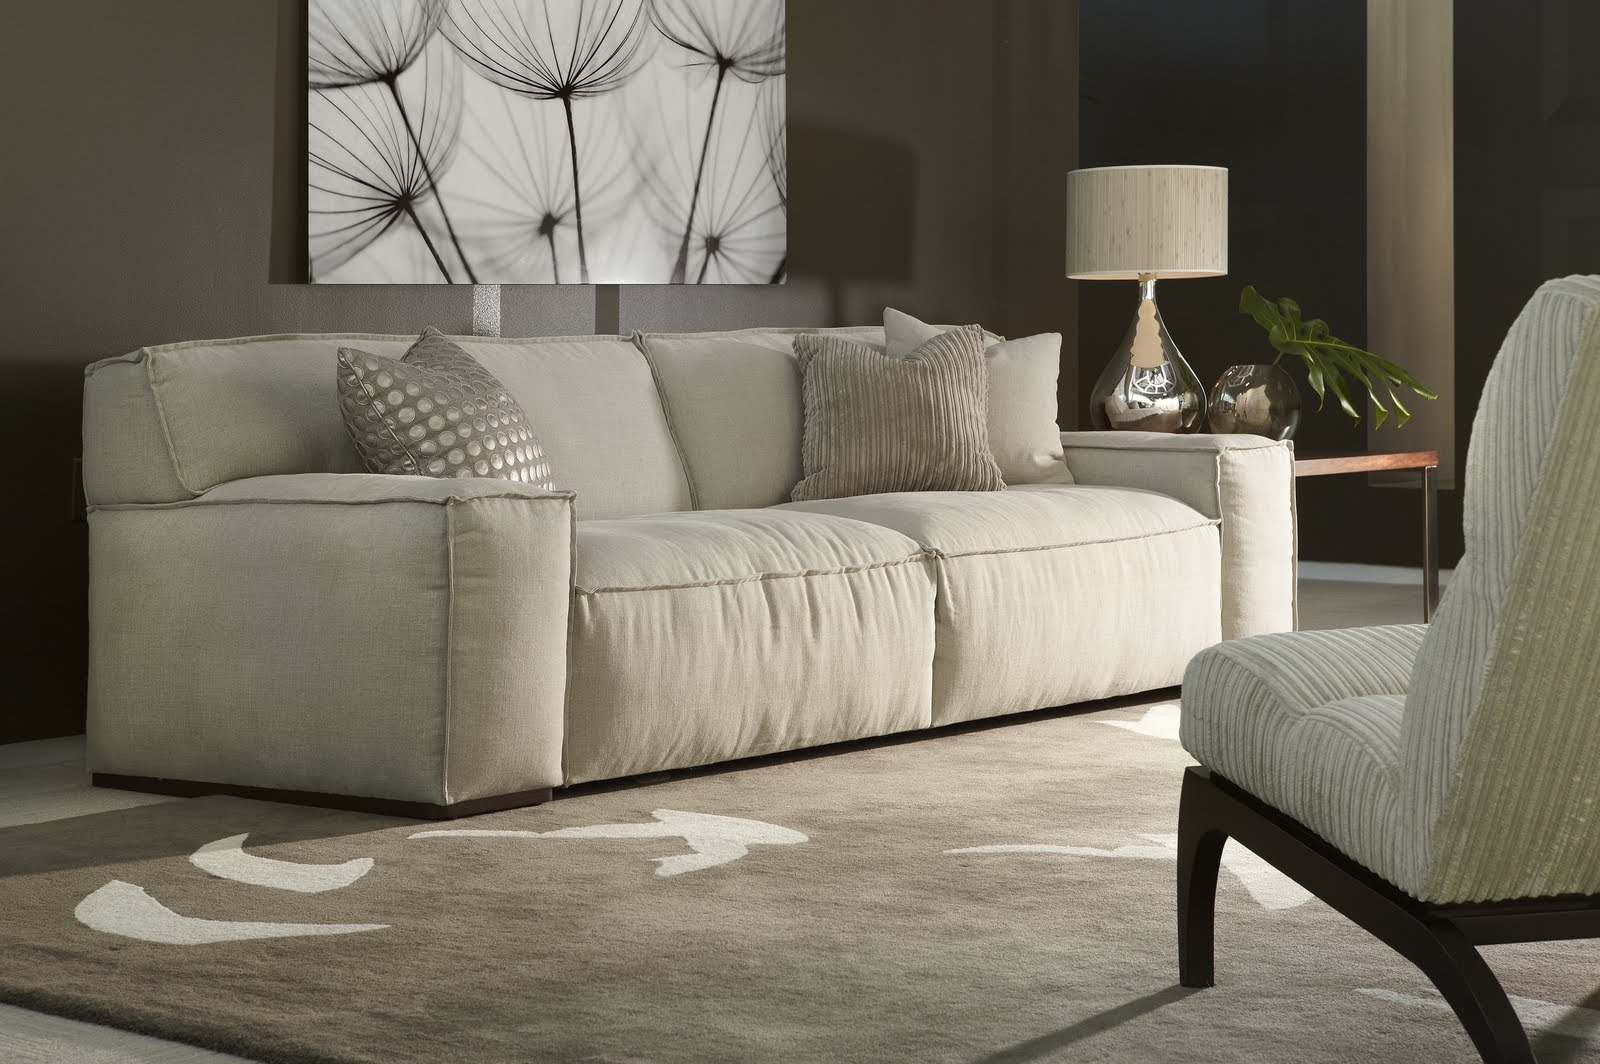 Sectional Sofa Design: Down Sectional Sofa Blend Wrapped Goose Throughout Down Feather Sectional Sofas (Image 9 of 10)